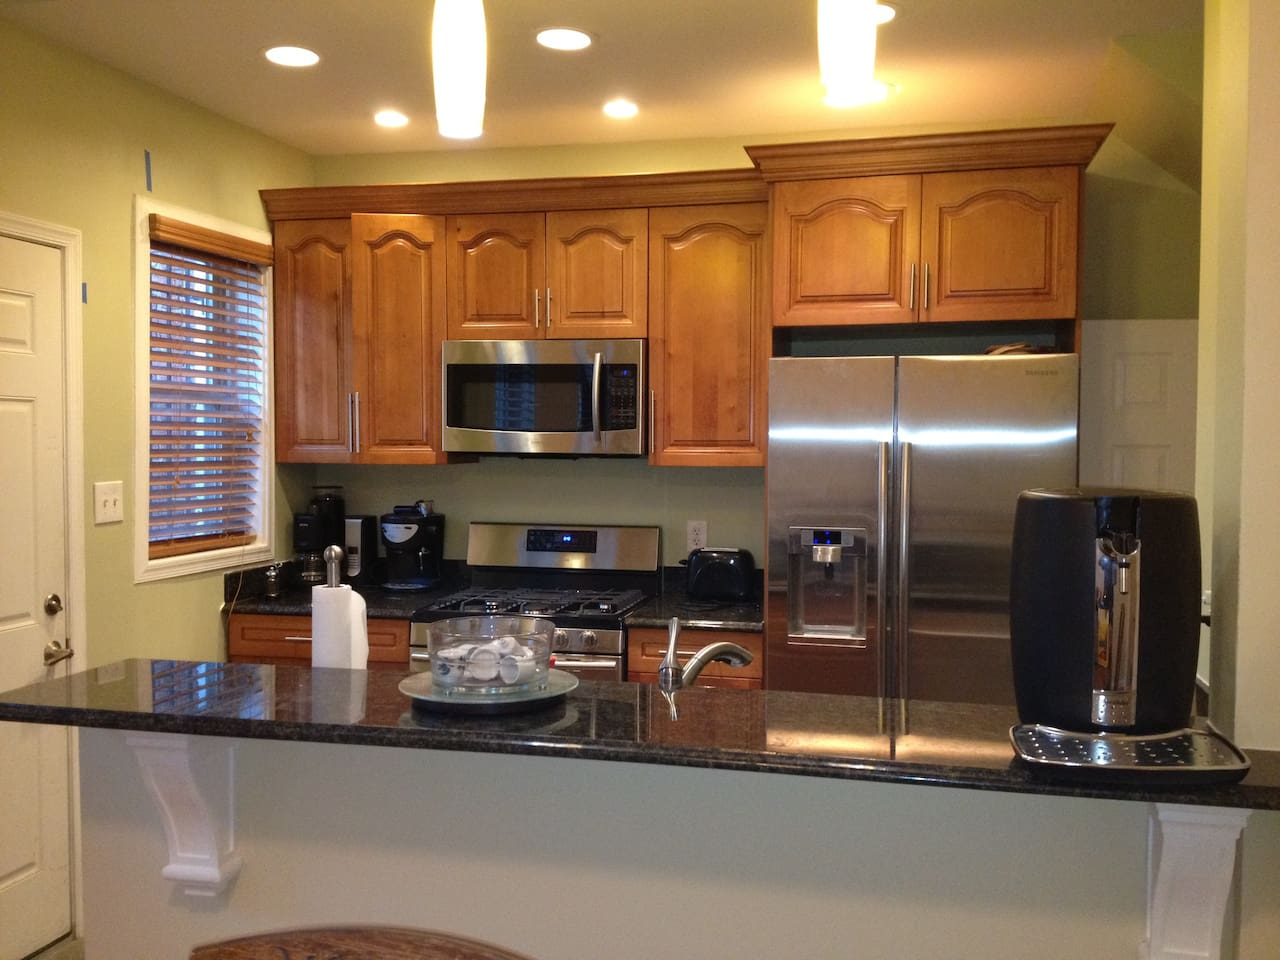 Brand new kitchen that you will have full access to.